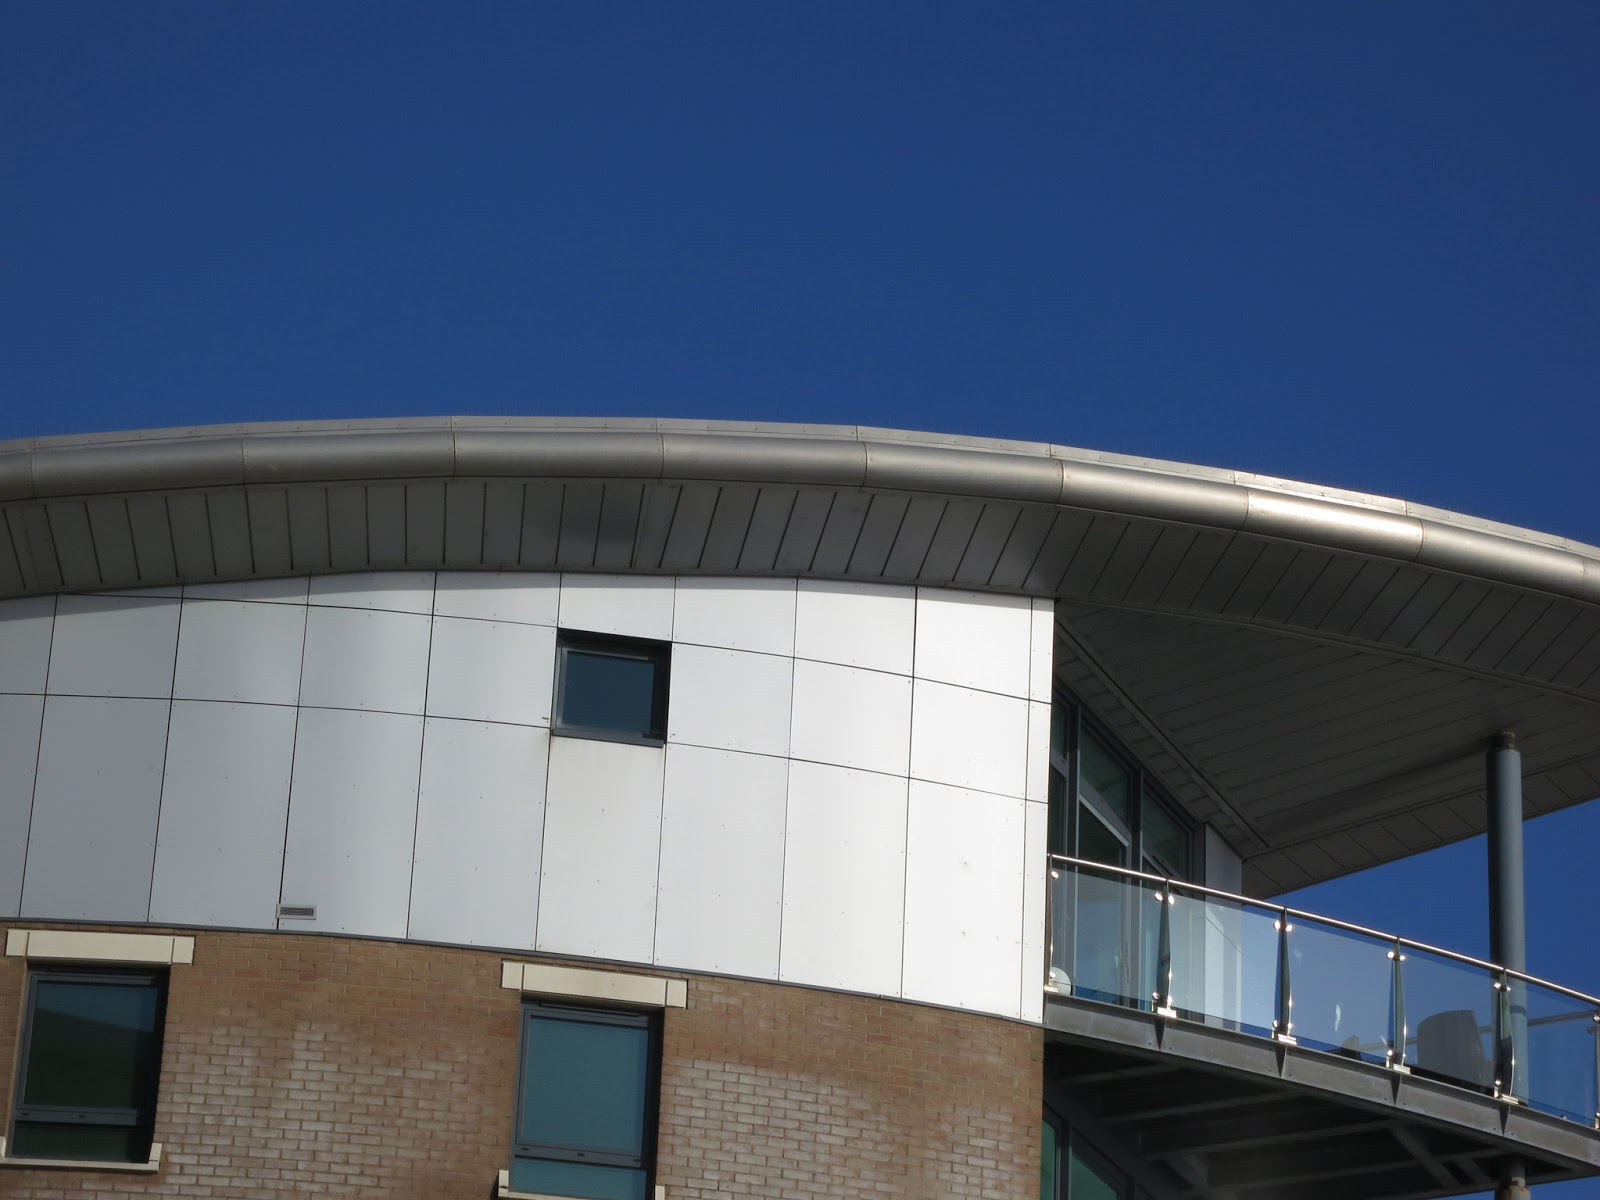 Glass balcony and curved roof against blue sky